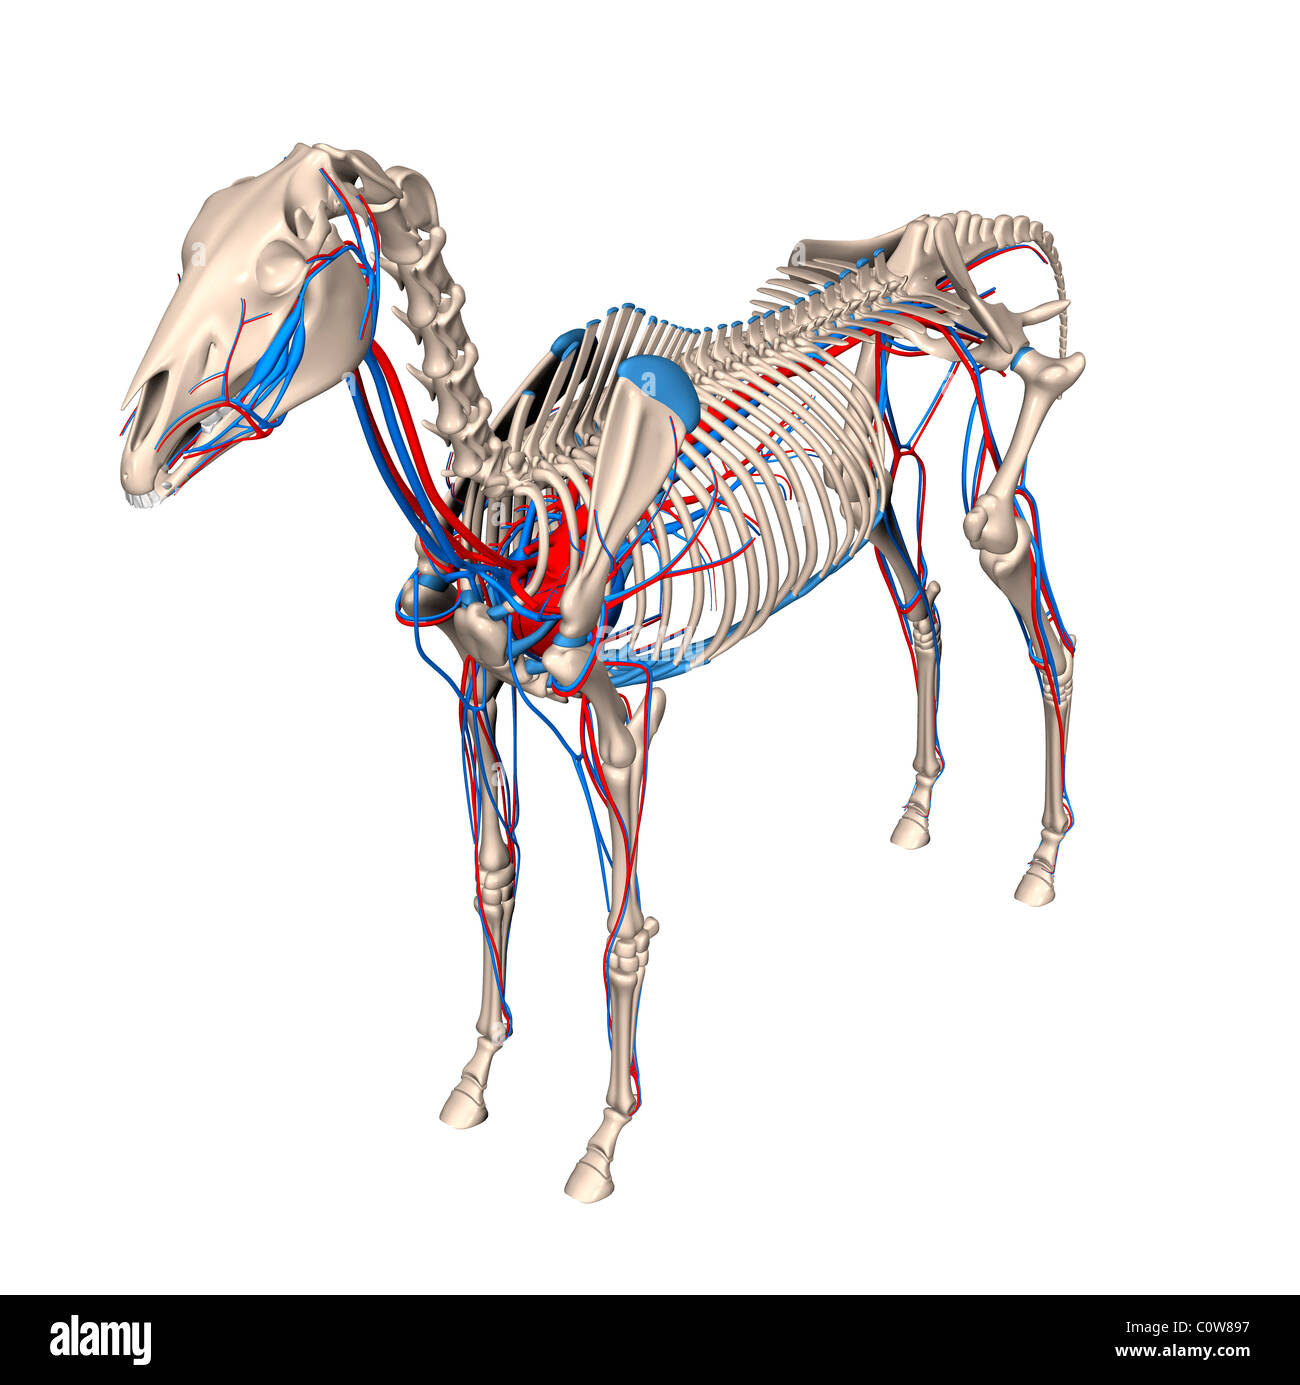 Horse Skeleton Illustration Stockfotos & Horse Skeleton Illustration ...